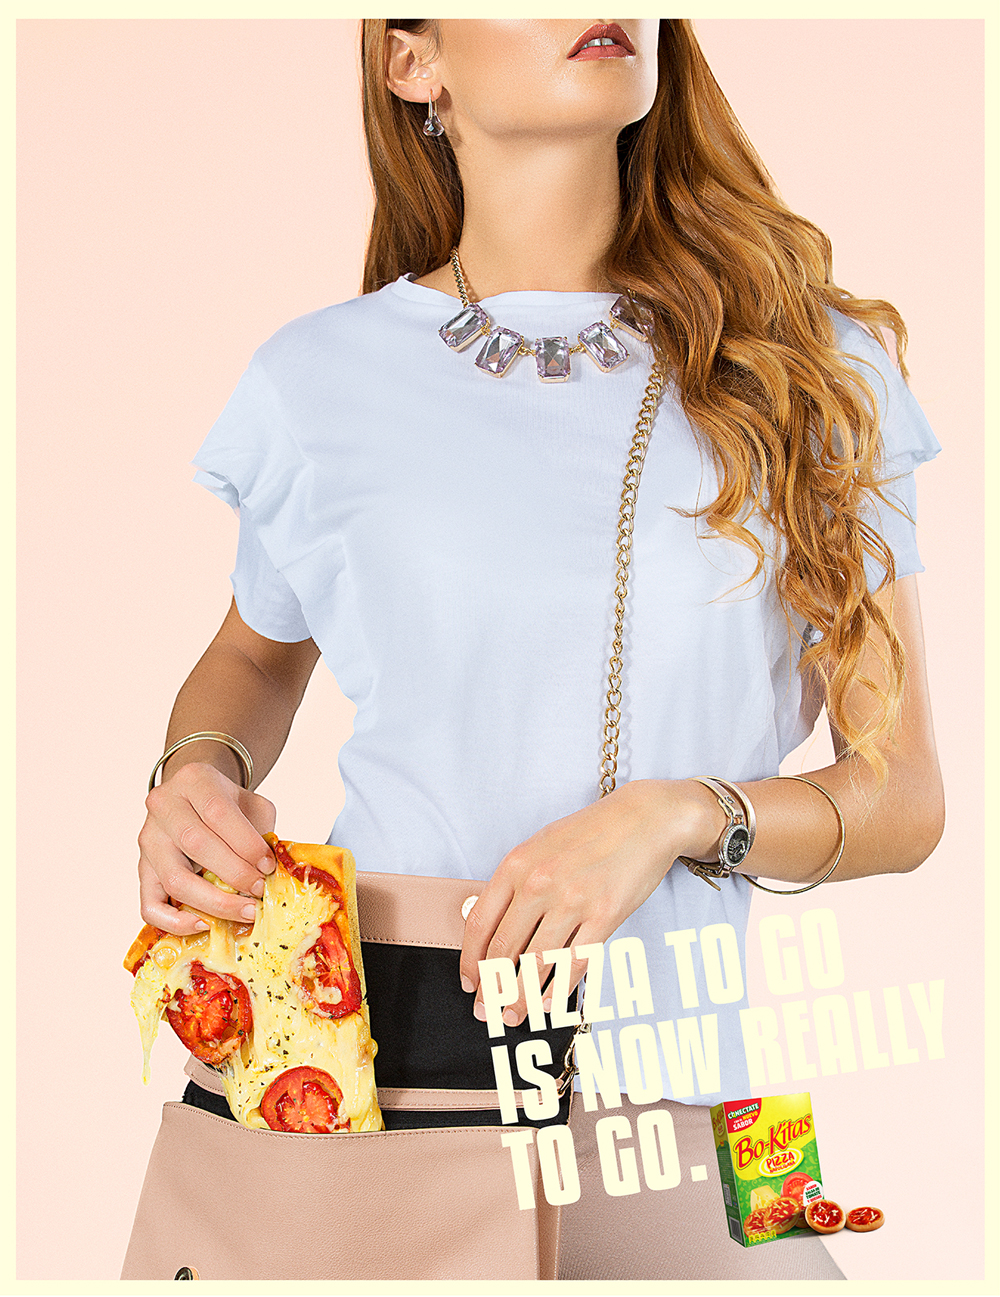 pizza girl.jpg